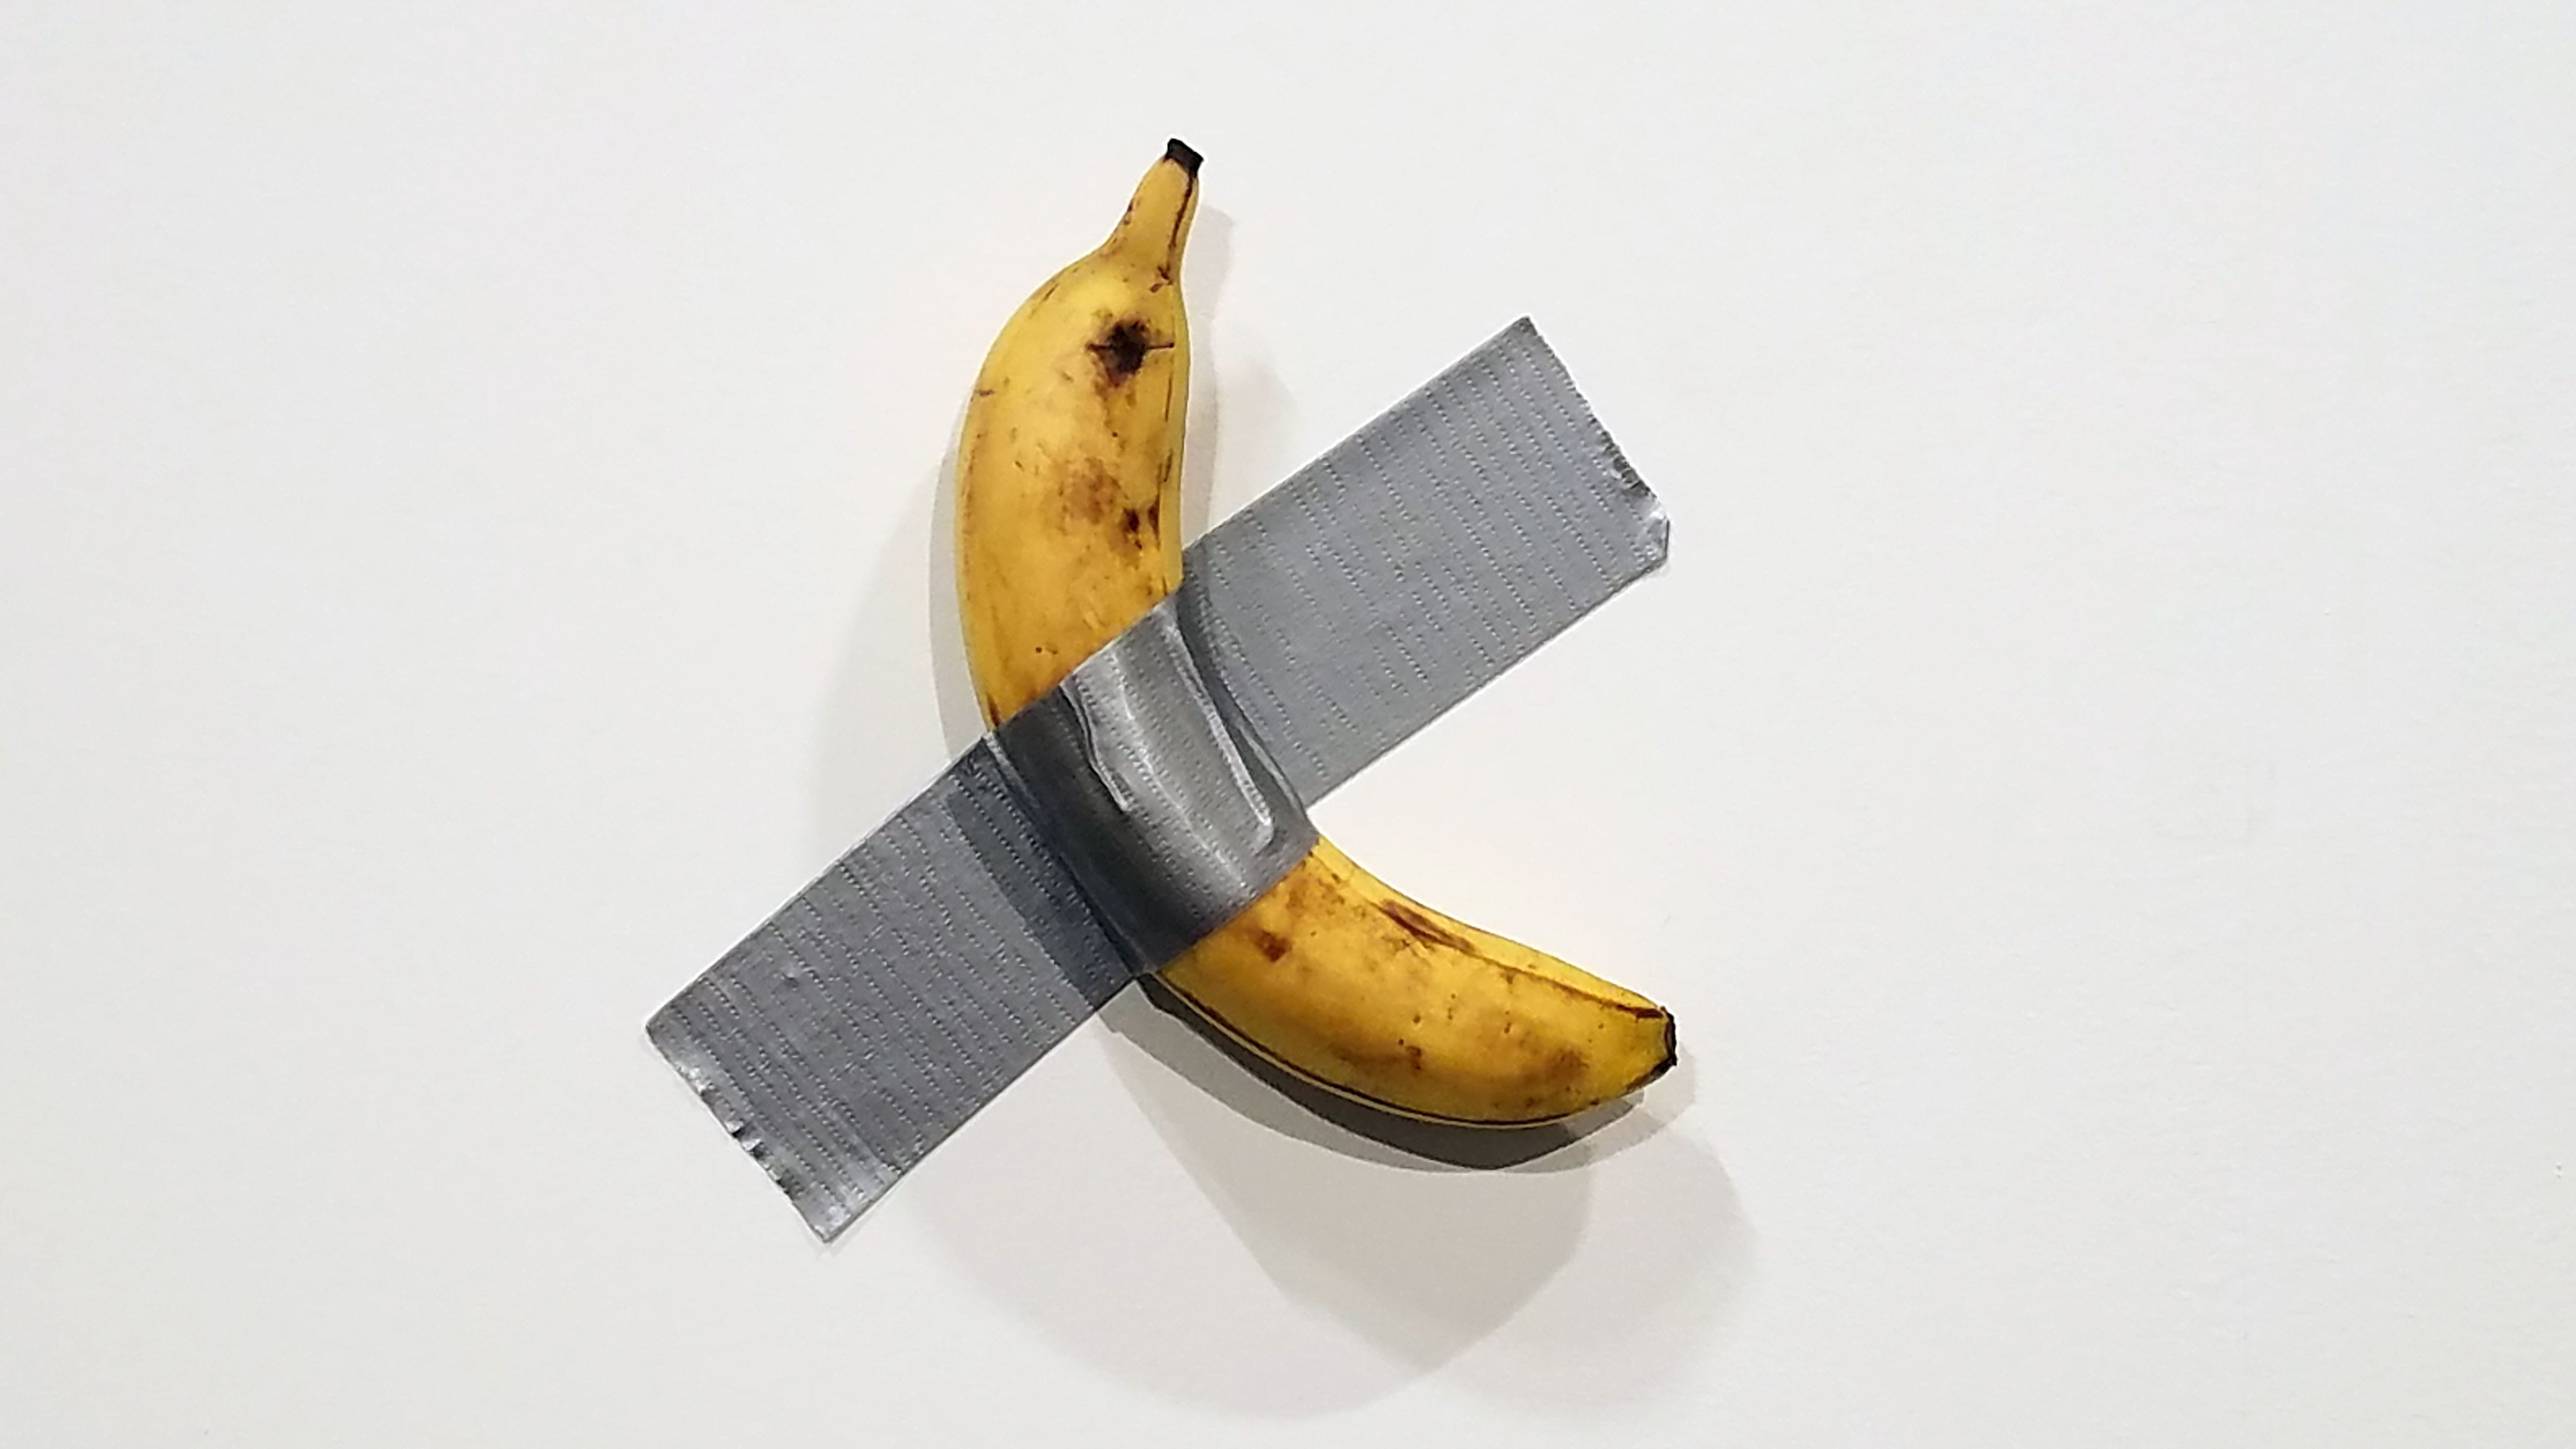 The $120,000 Art Basel Banana Gets the Meme Treatment